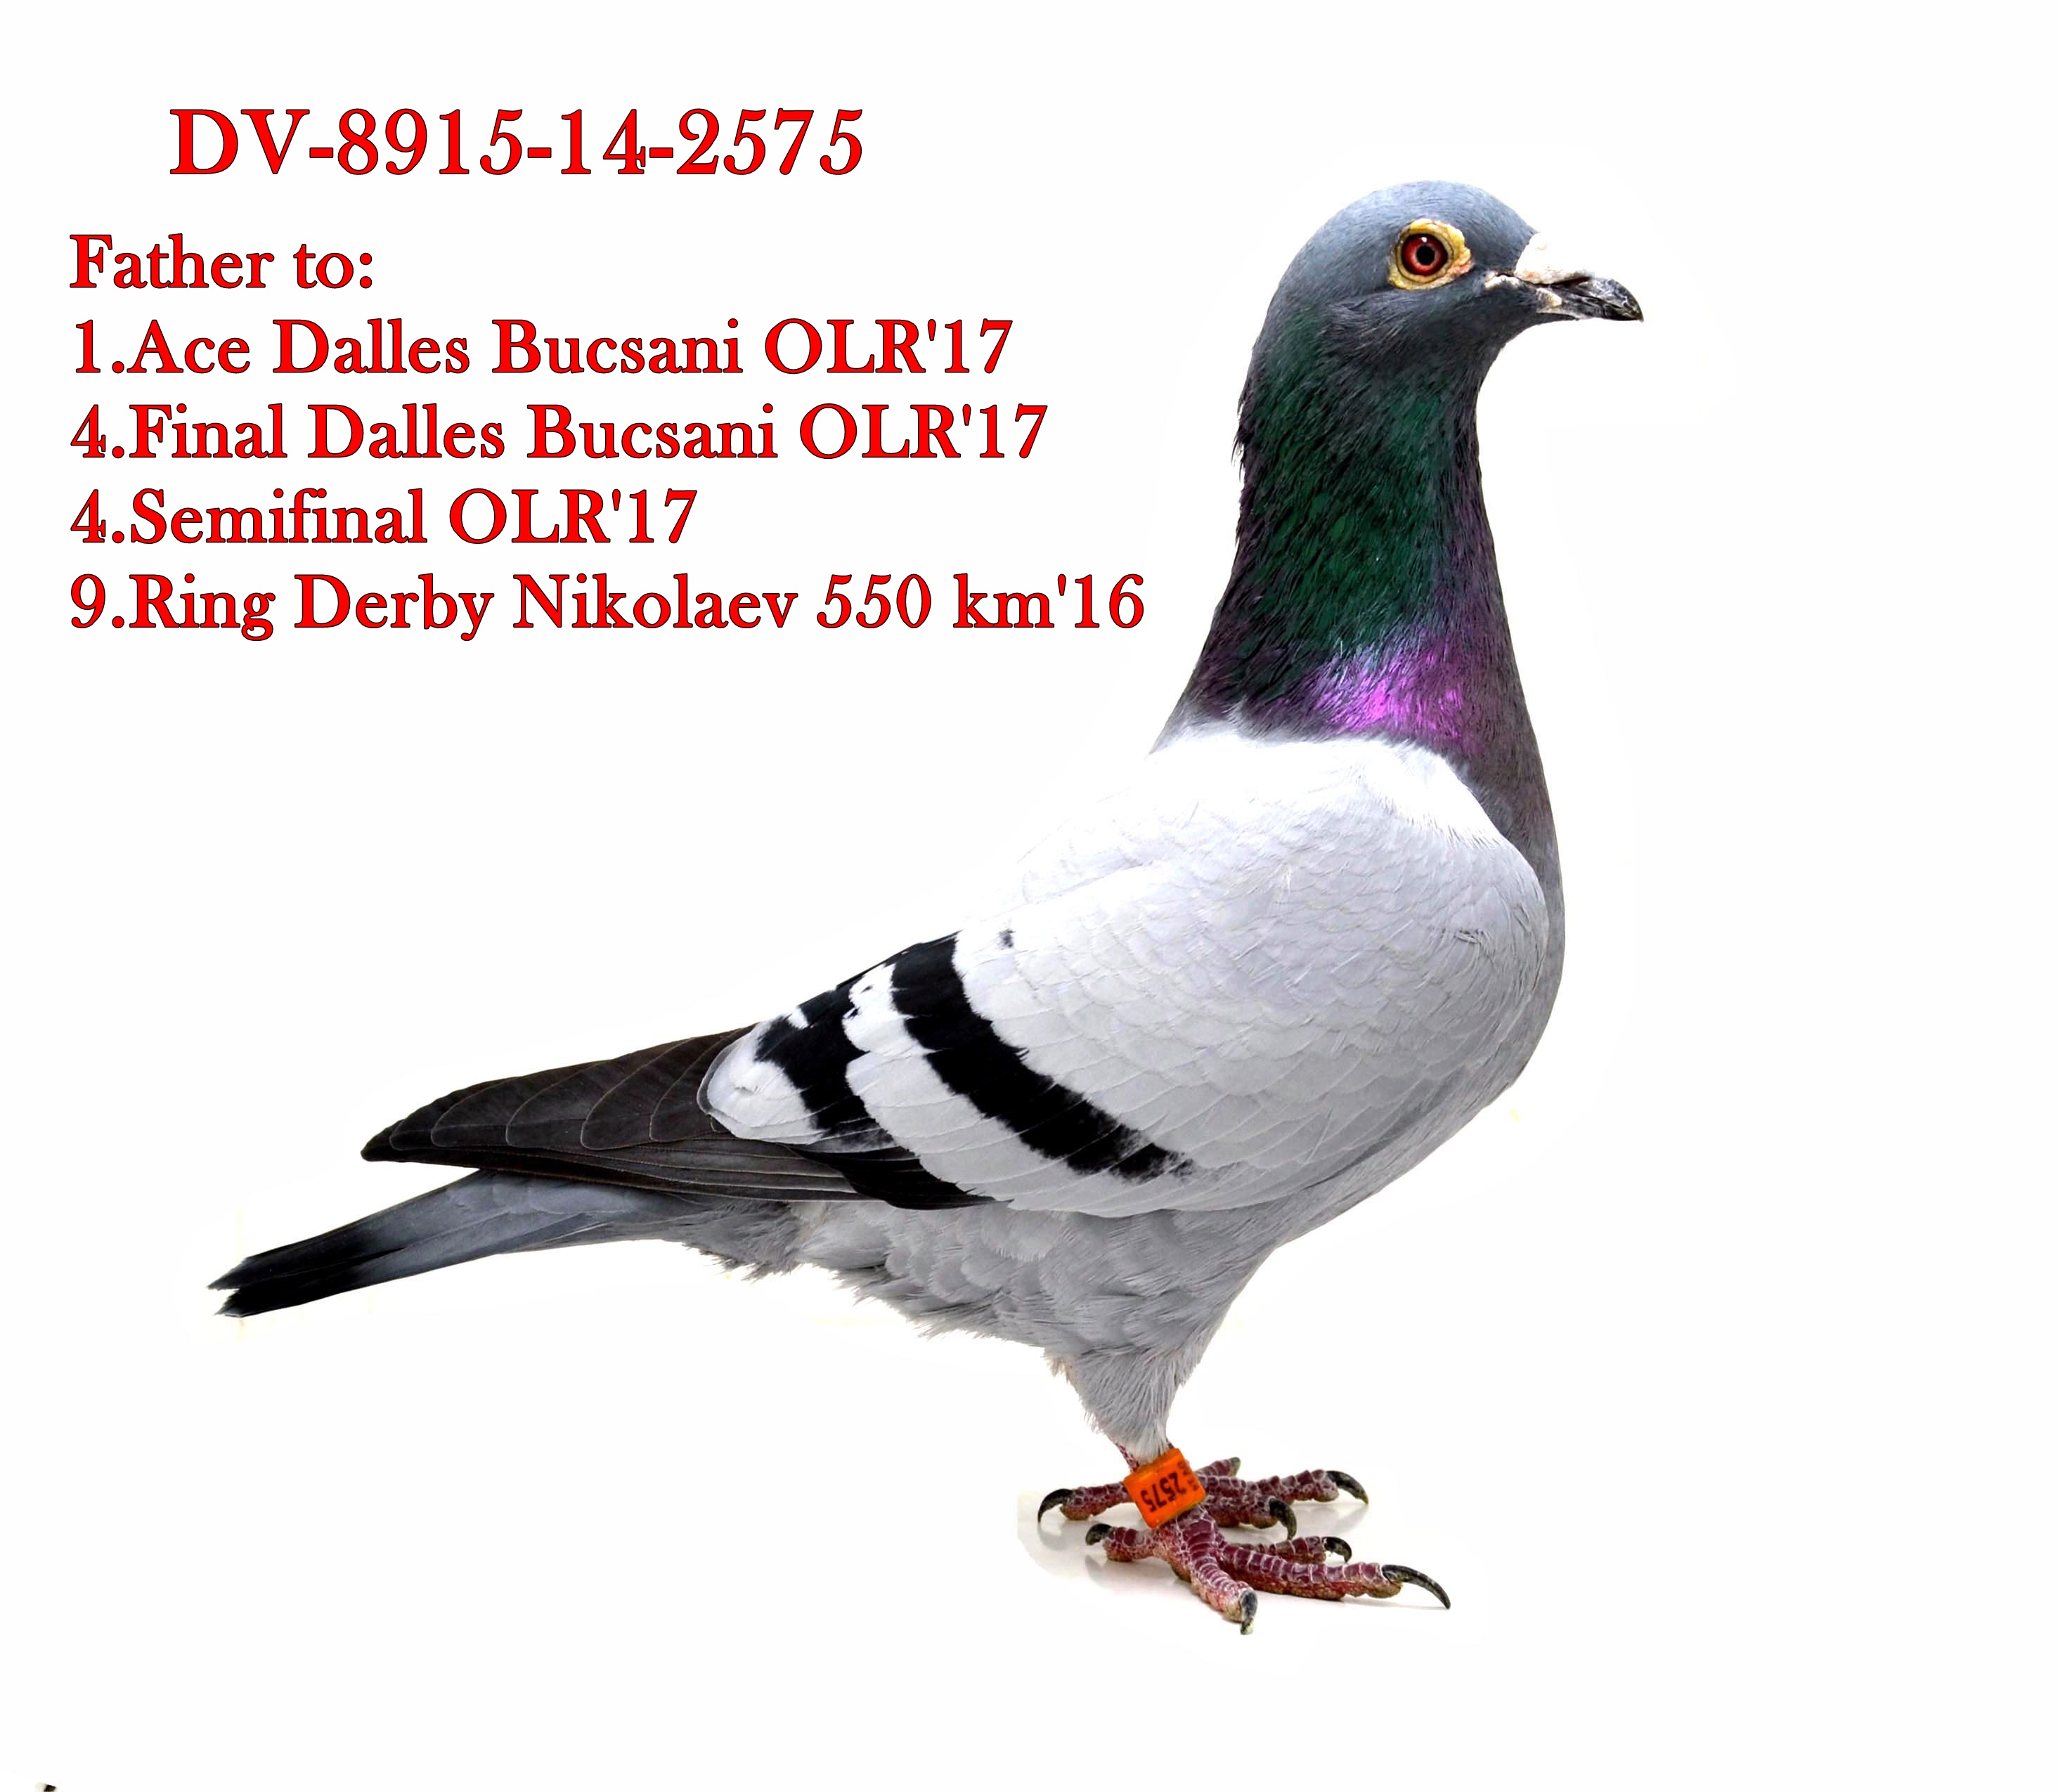 RO 17 9702 F - Full sister 1 ace pigeon Dalles Bucsani OLR